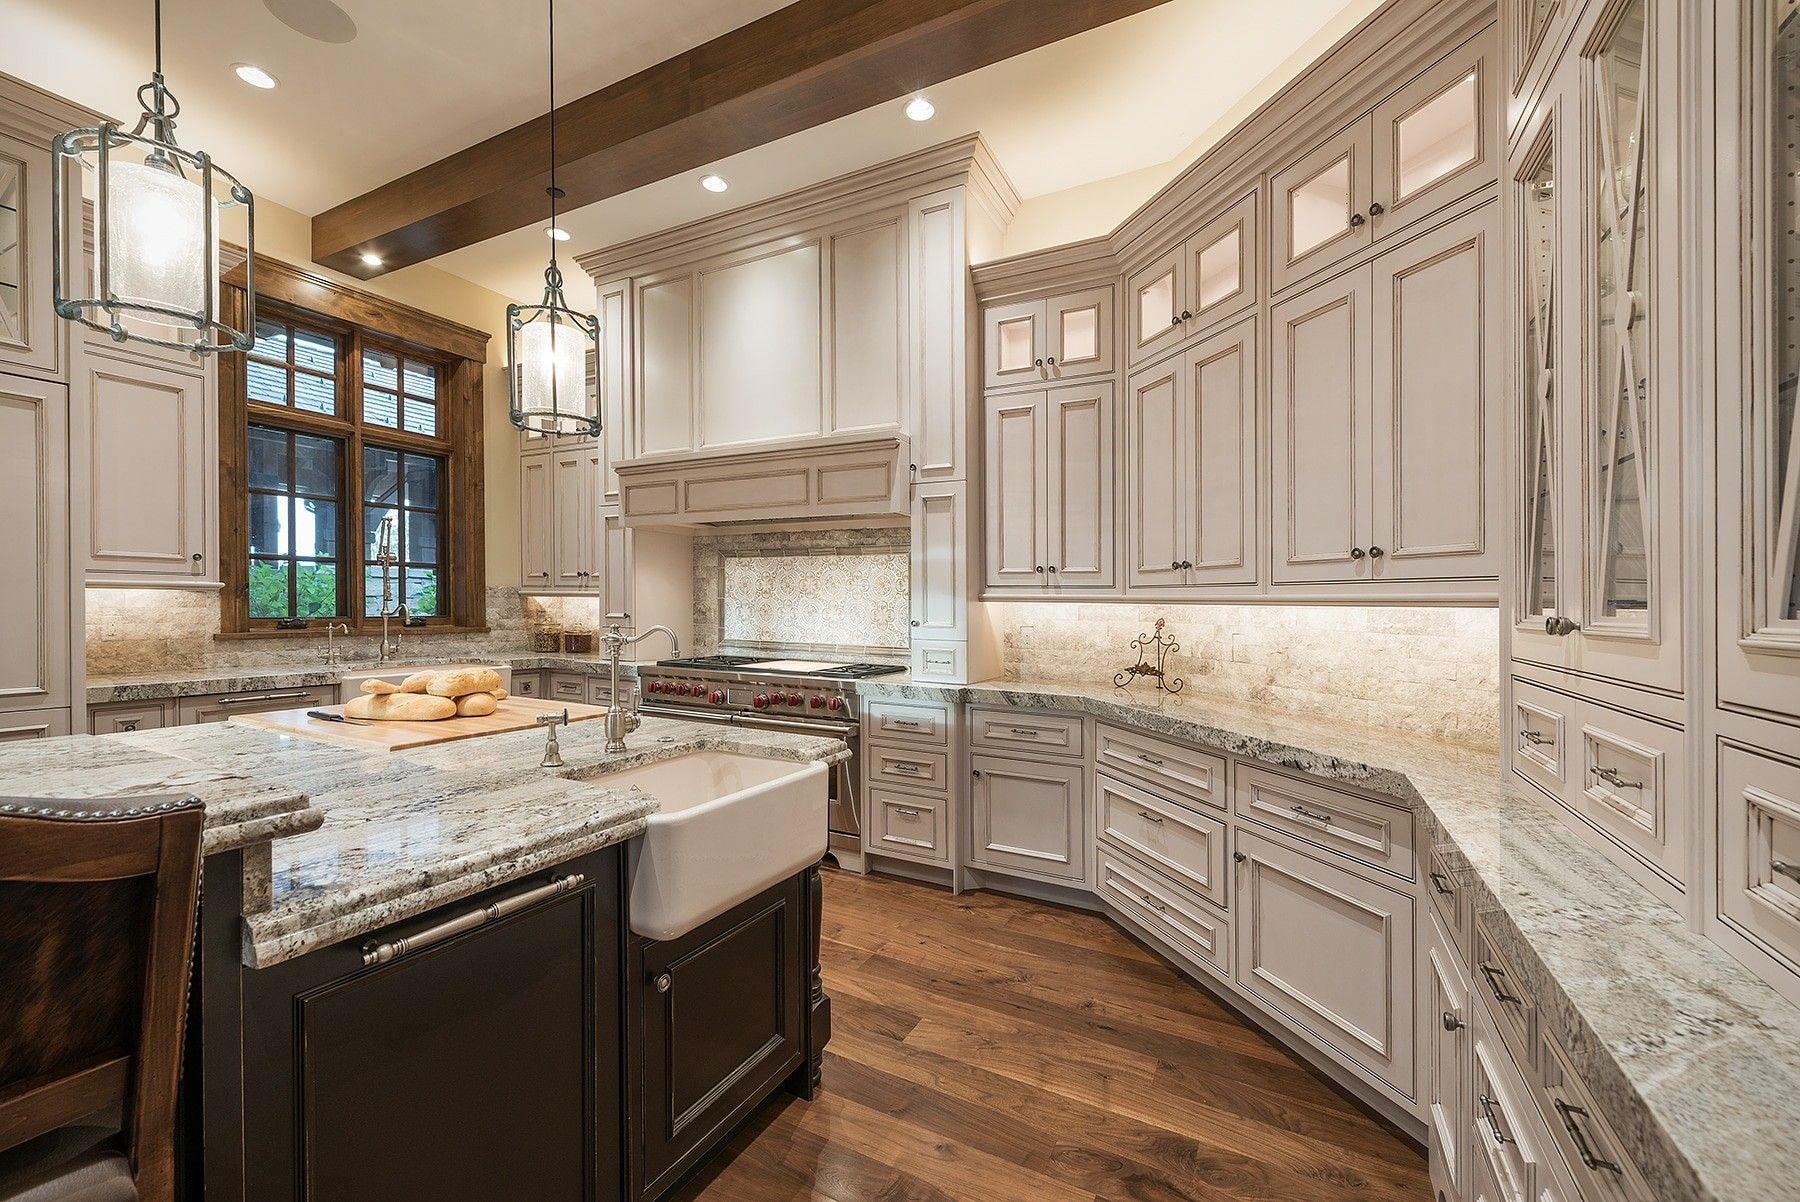 Elegant kitchen in Park City, Utah by Cameo Homes Inc